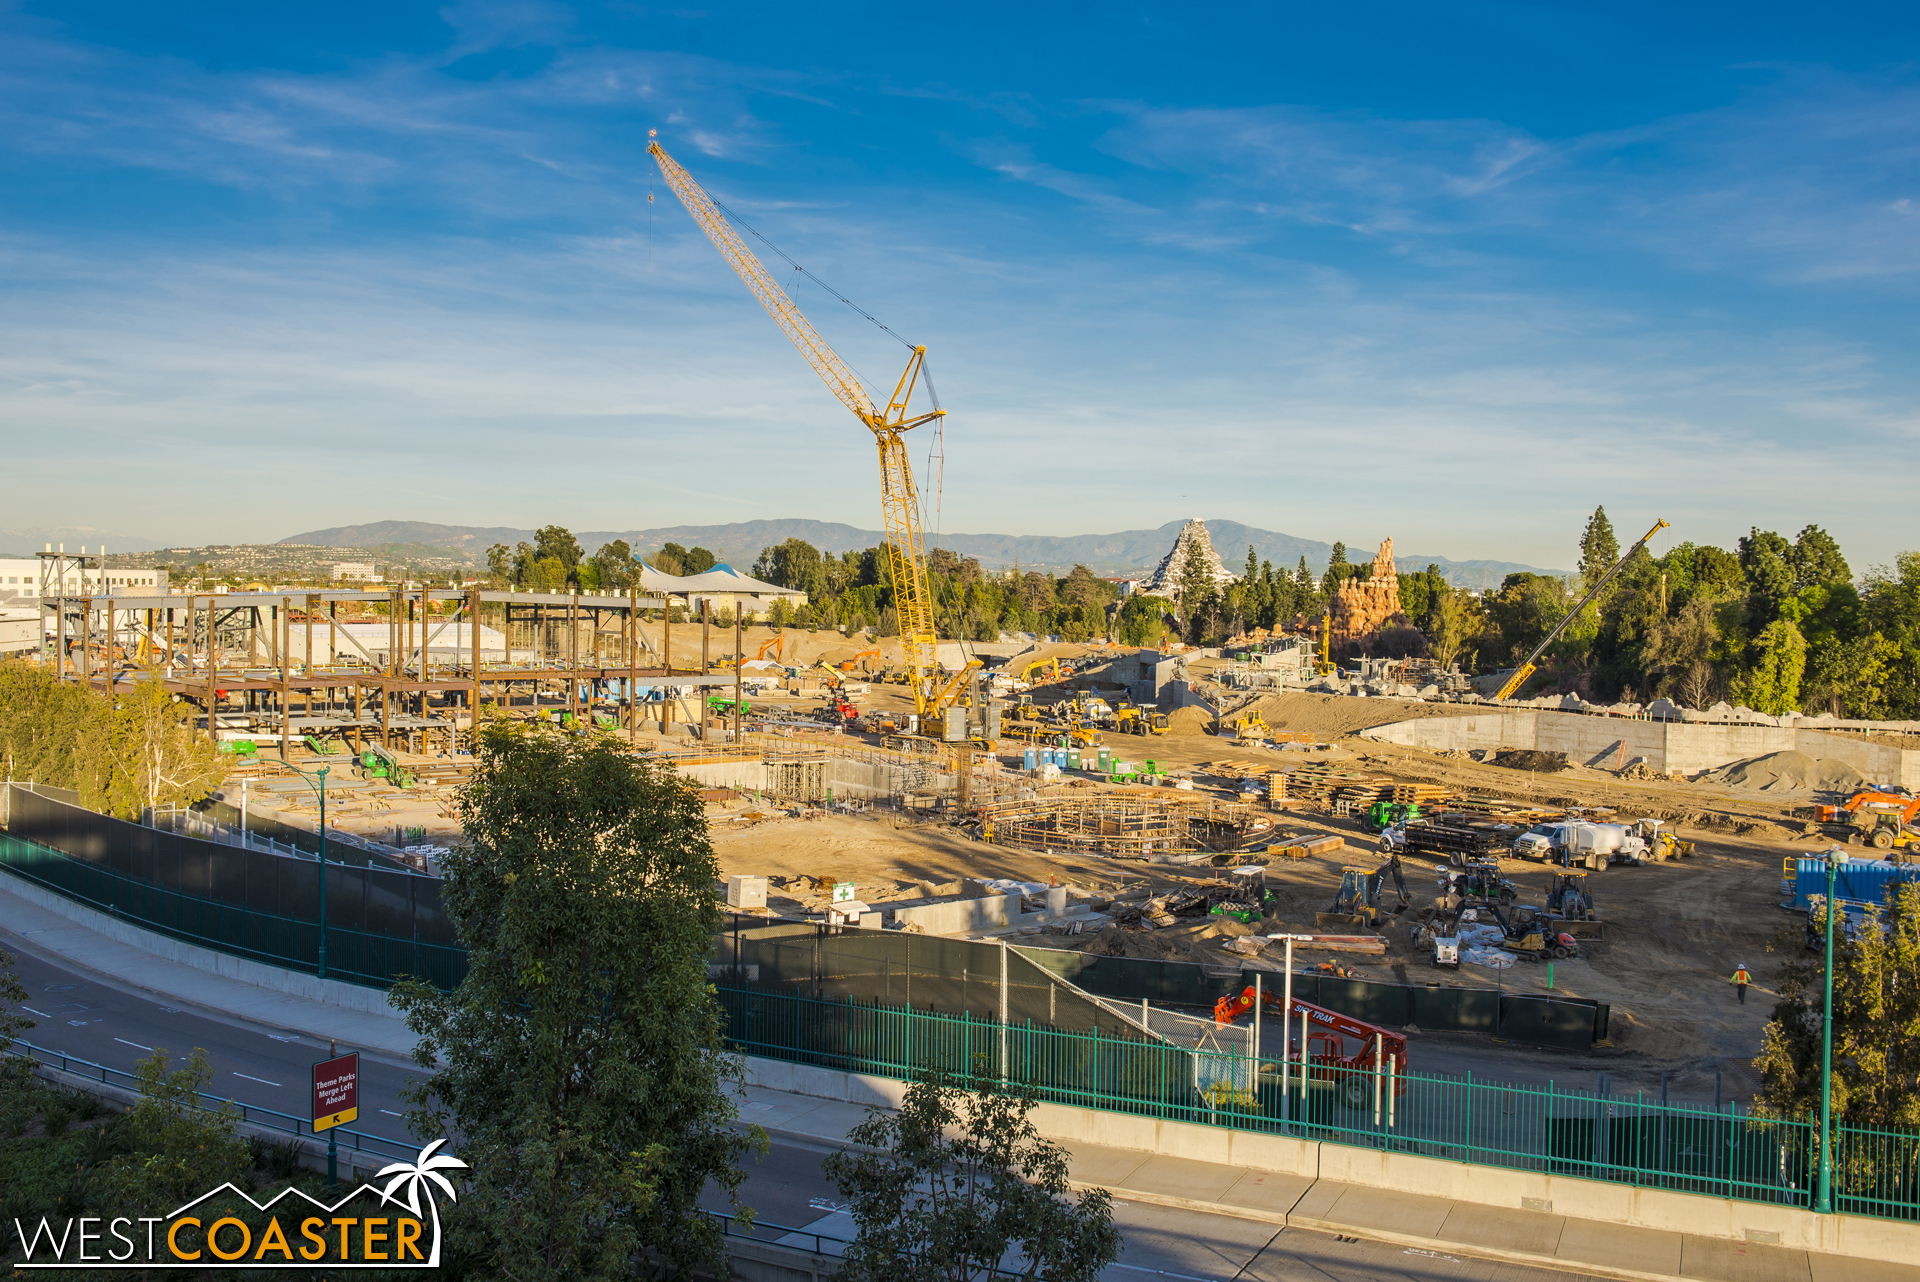 Lets look at the main E-Ticket first, which is shaping up to be quite a large sprawl of construction!